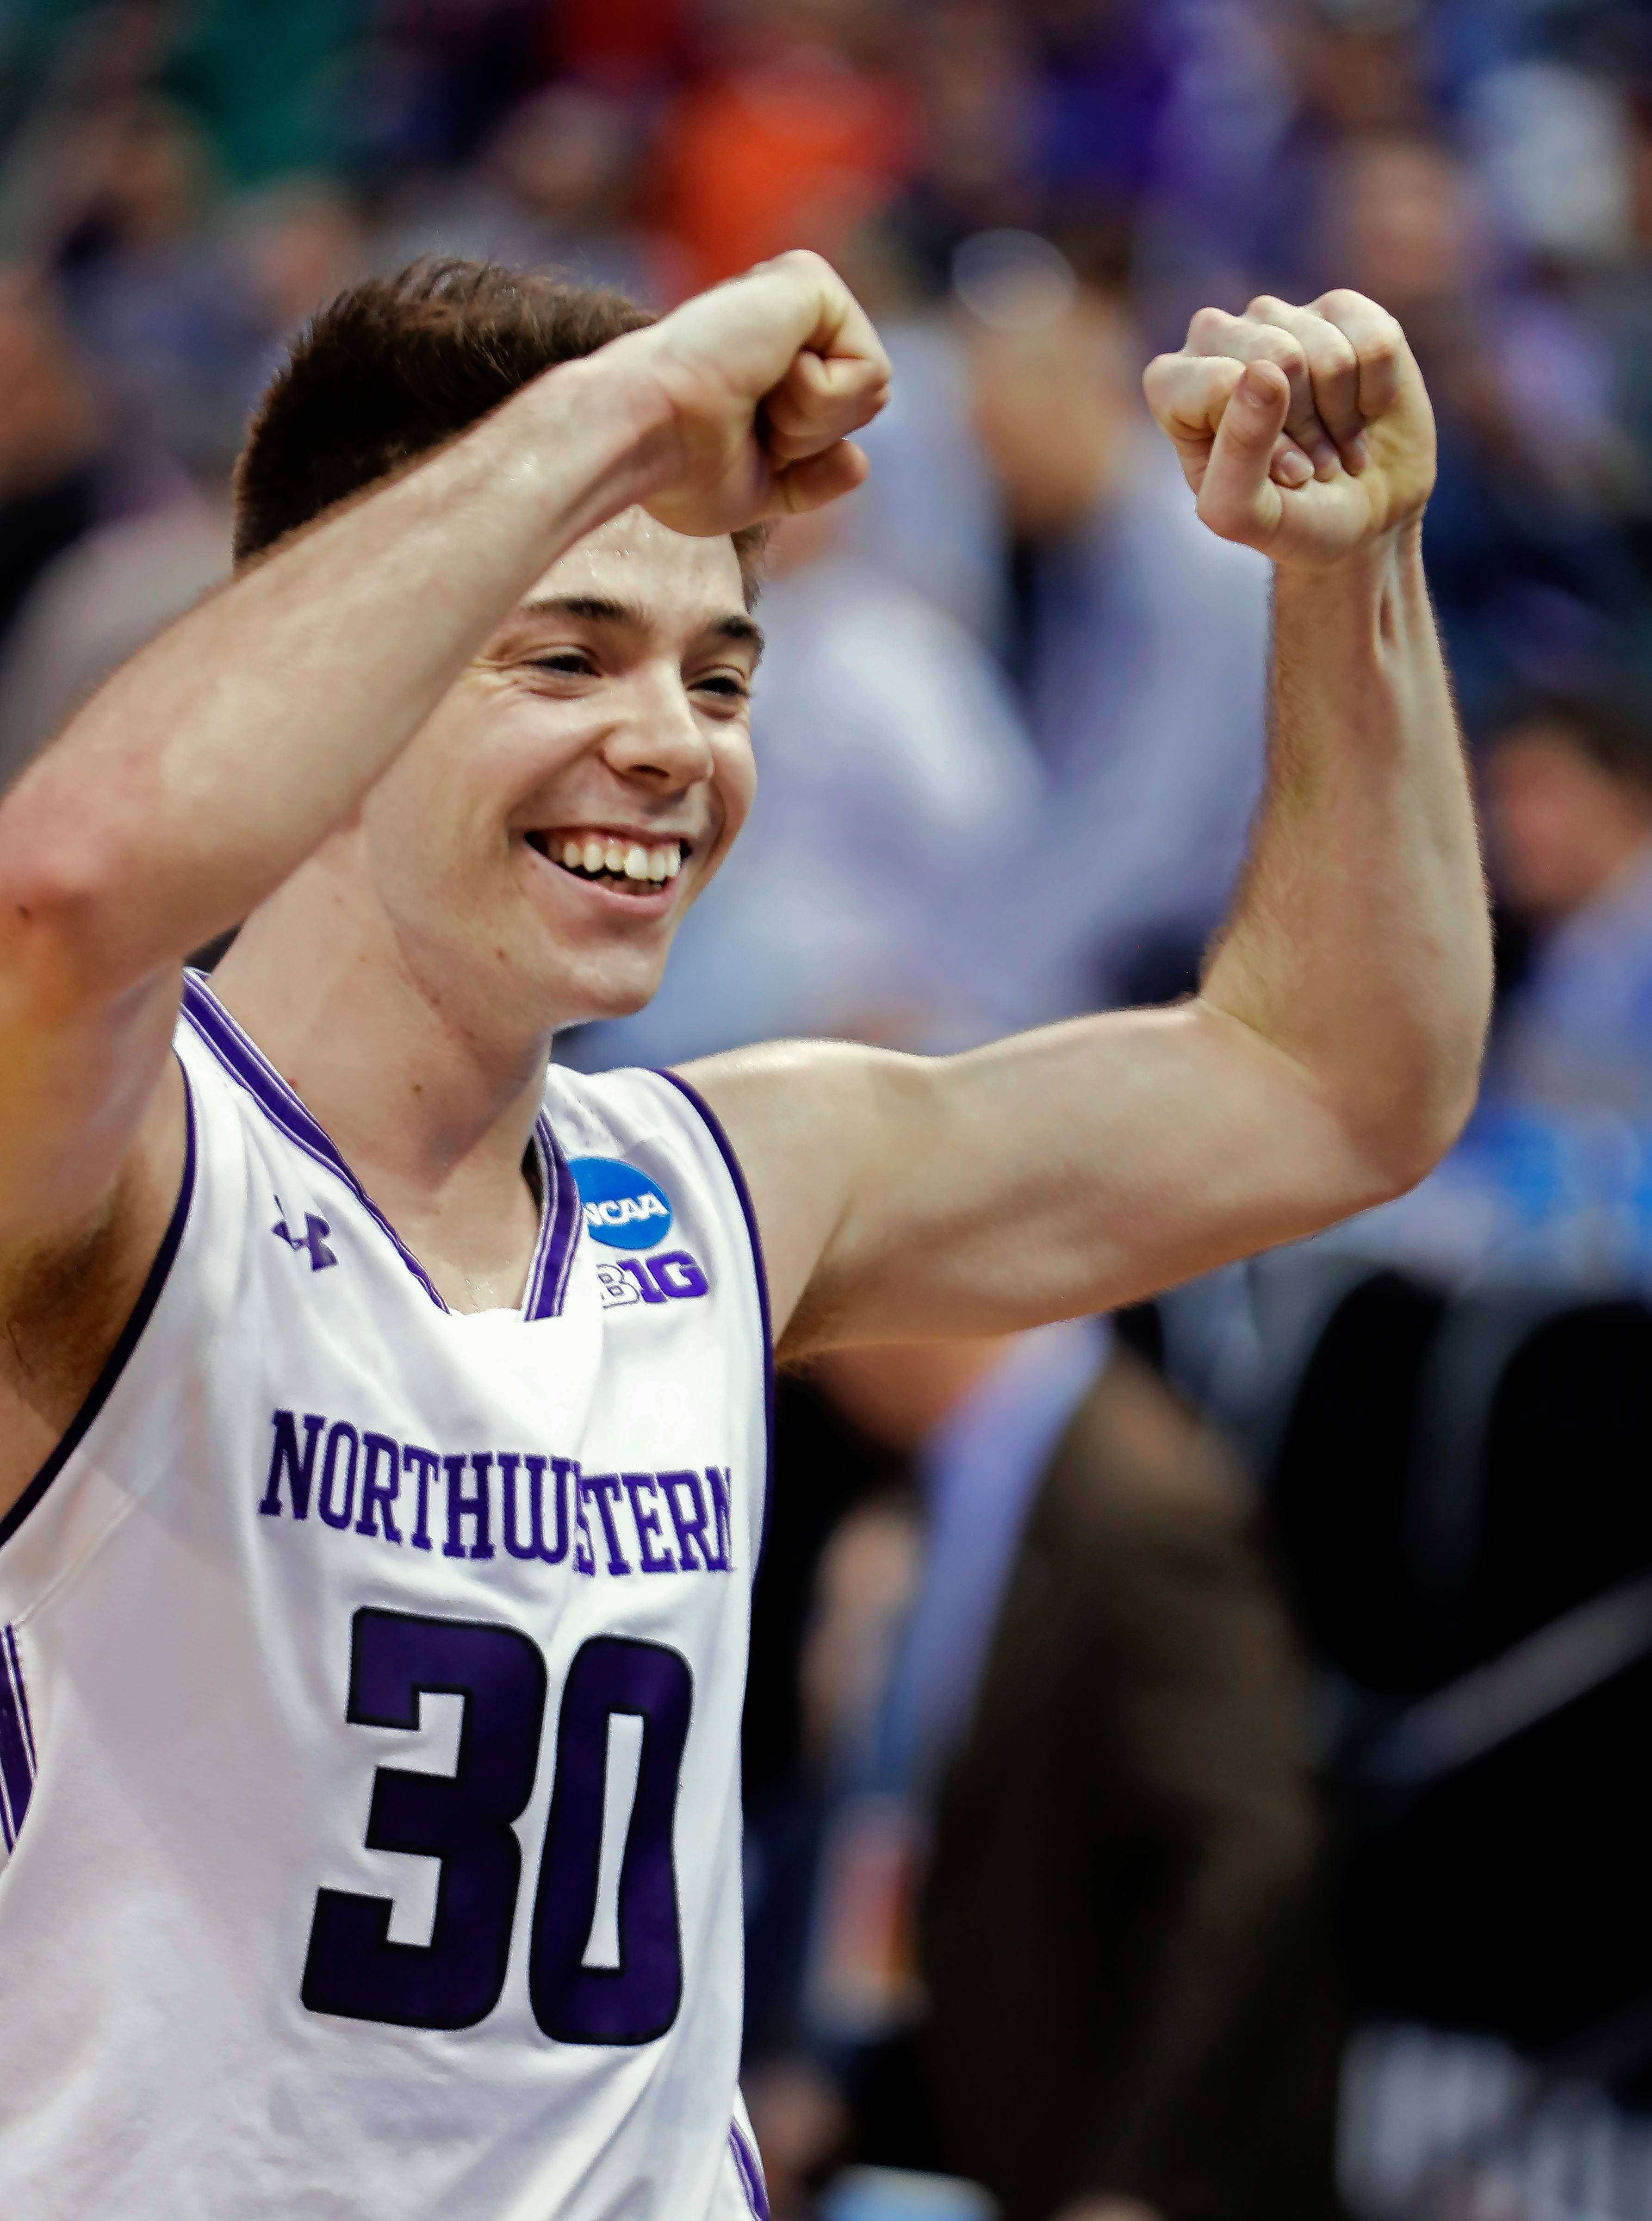 Northwestern guard Bryant McIntosh celebrates after Northwestern defeated Vanderbilt 68-66 in a first-round game in the NCAA men's college basketball tournament Thursday, March 16, 2017, in Salt Lake City.